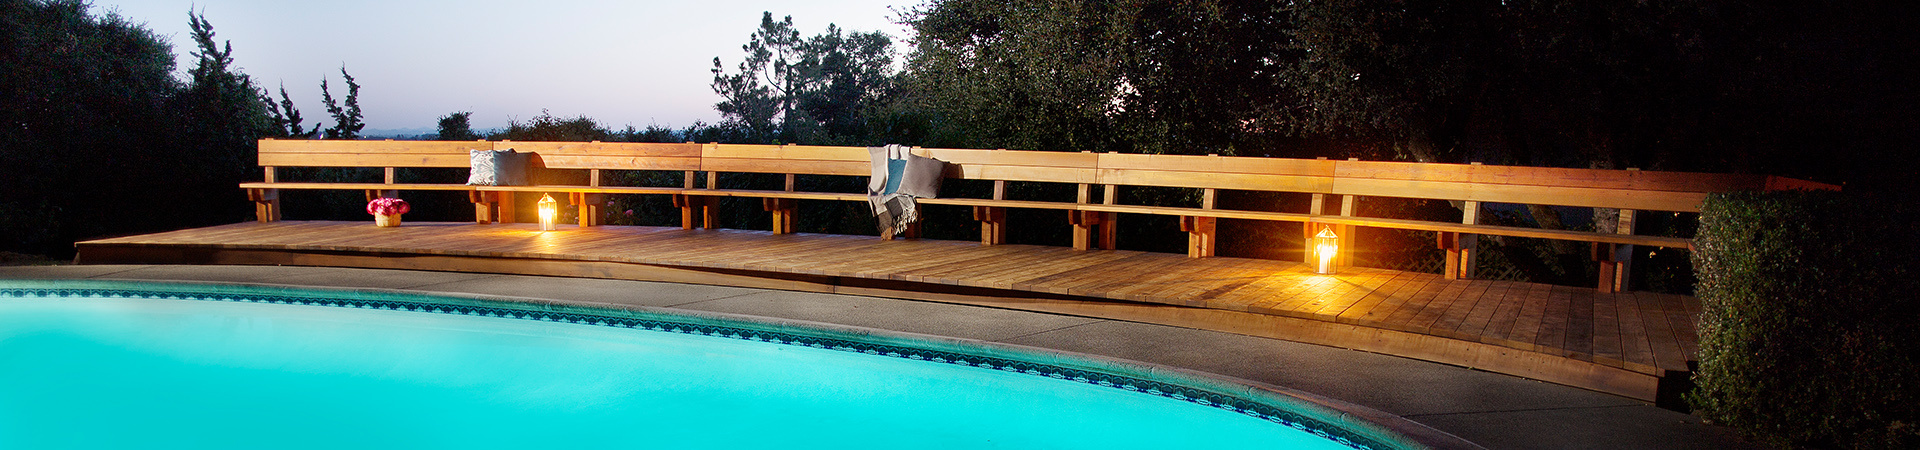 Inspirational Redwood Deck and Pool Patio